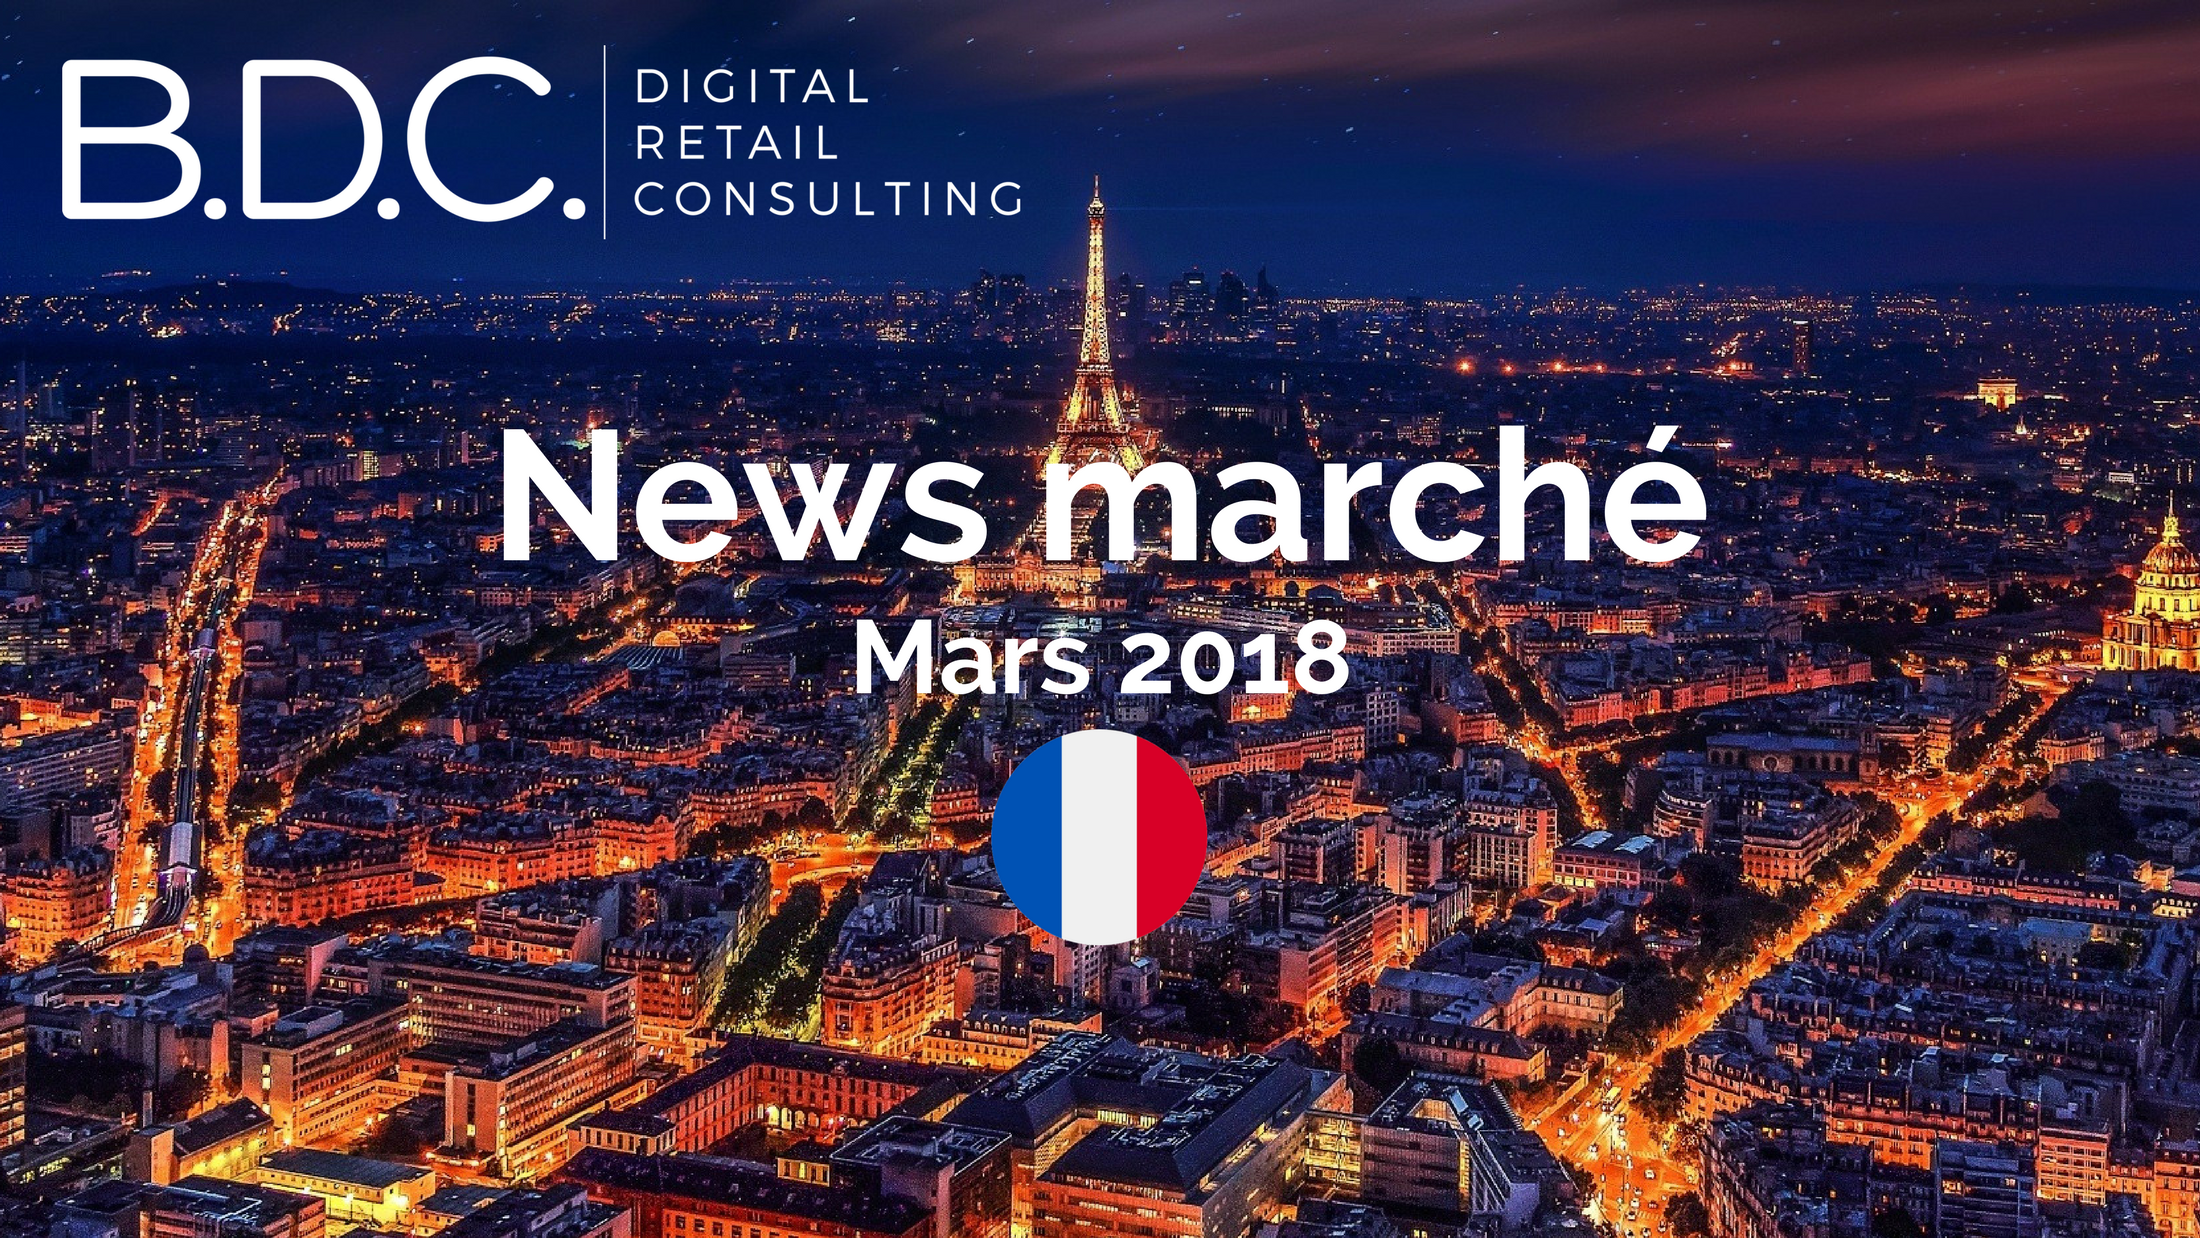 Trends News suite 1 - News marché - Mars 2018